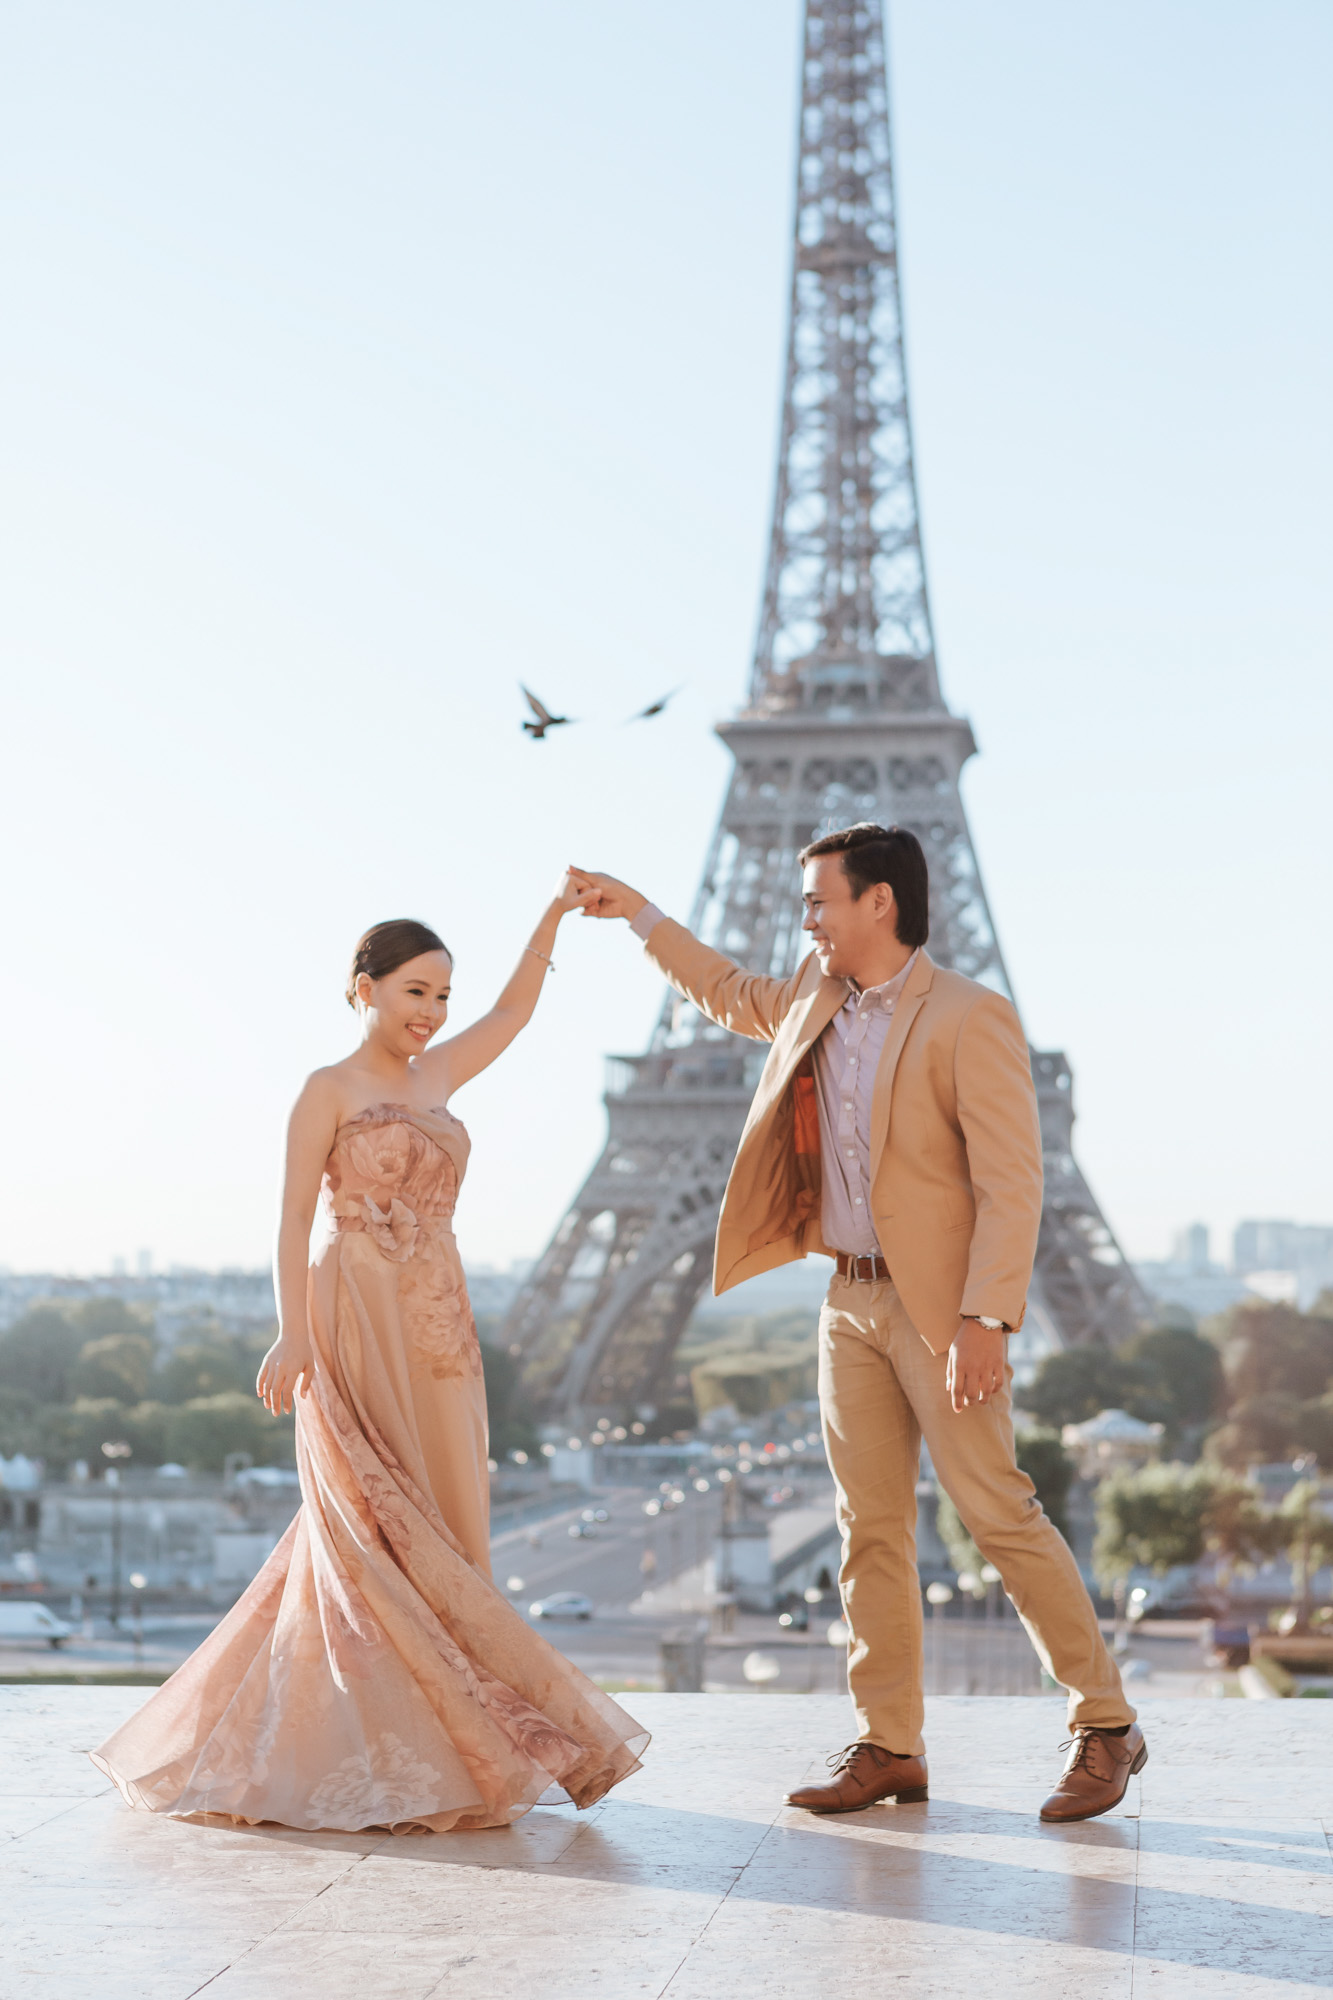 Pre-wedding couple portrait session dancing at Trocadero by the Eiffel Tower in sunrise captured by Photographer in Paris Federico Guendel